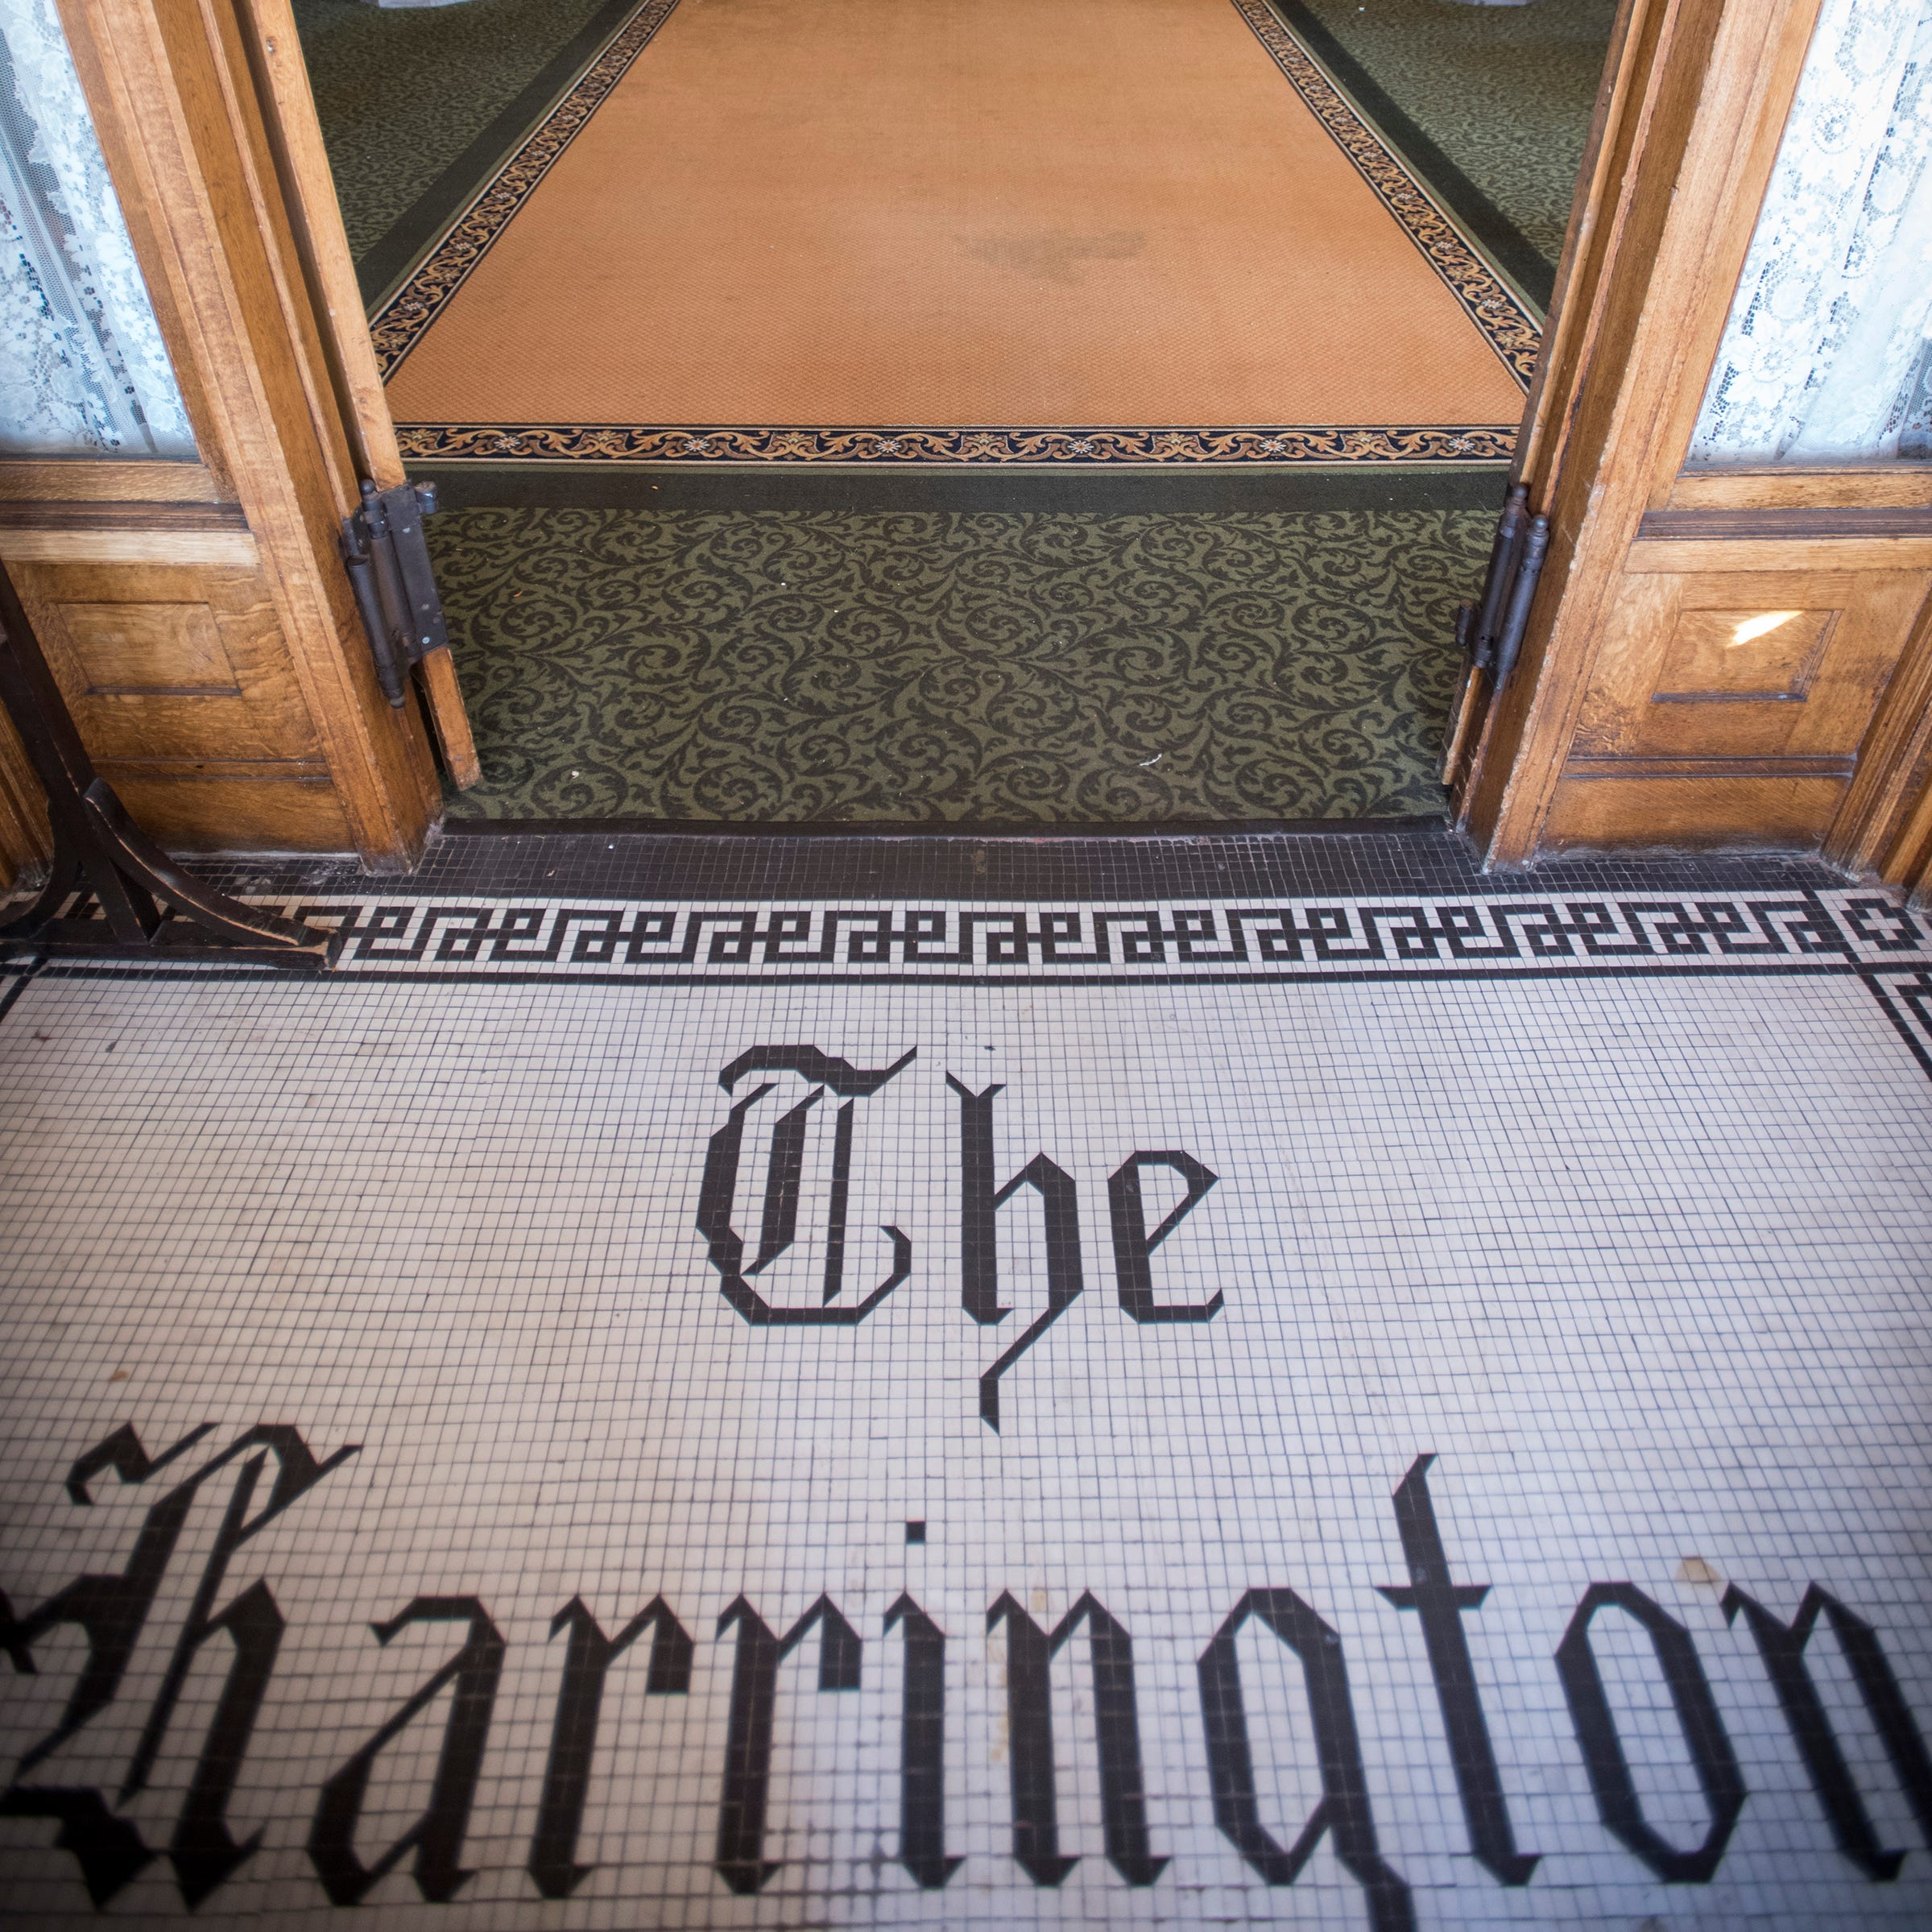 Katofsky going 'back to the roots' of Harrington Hotel